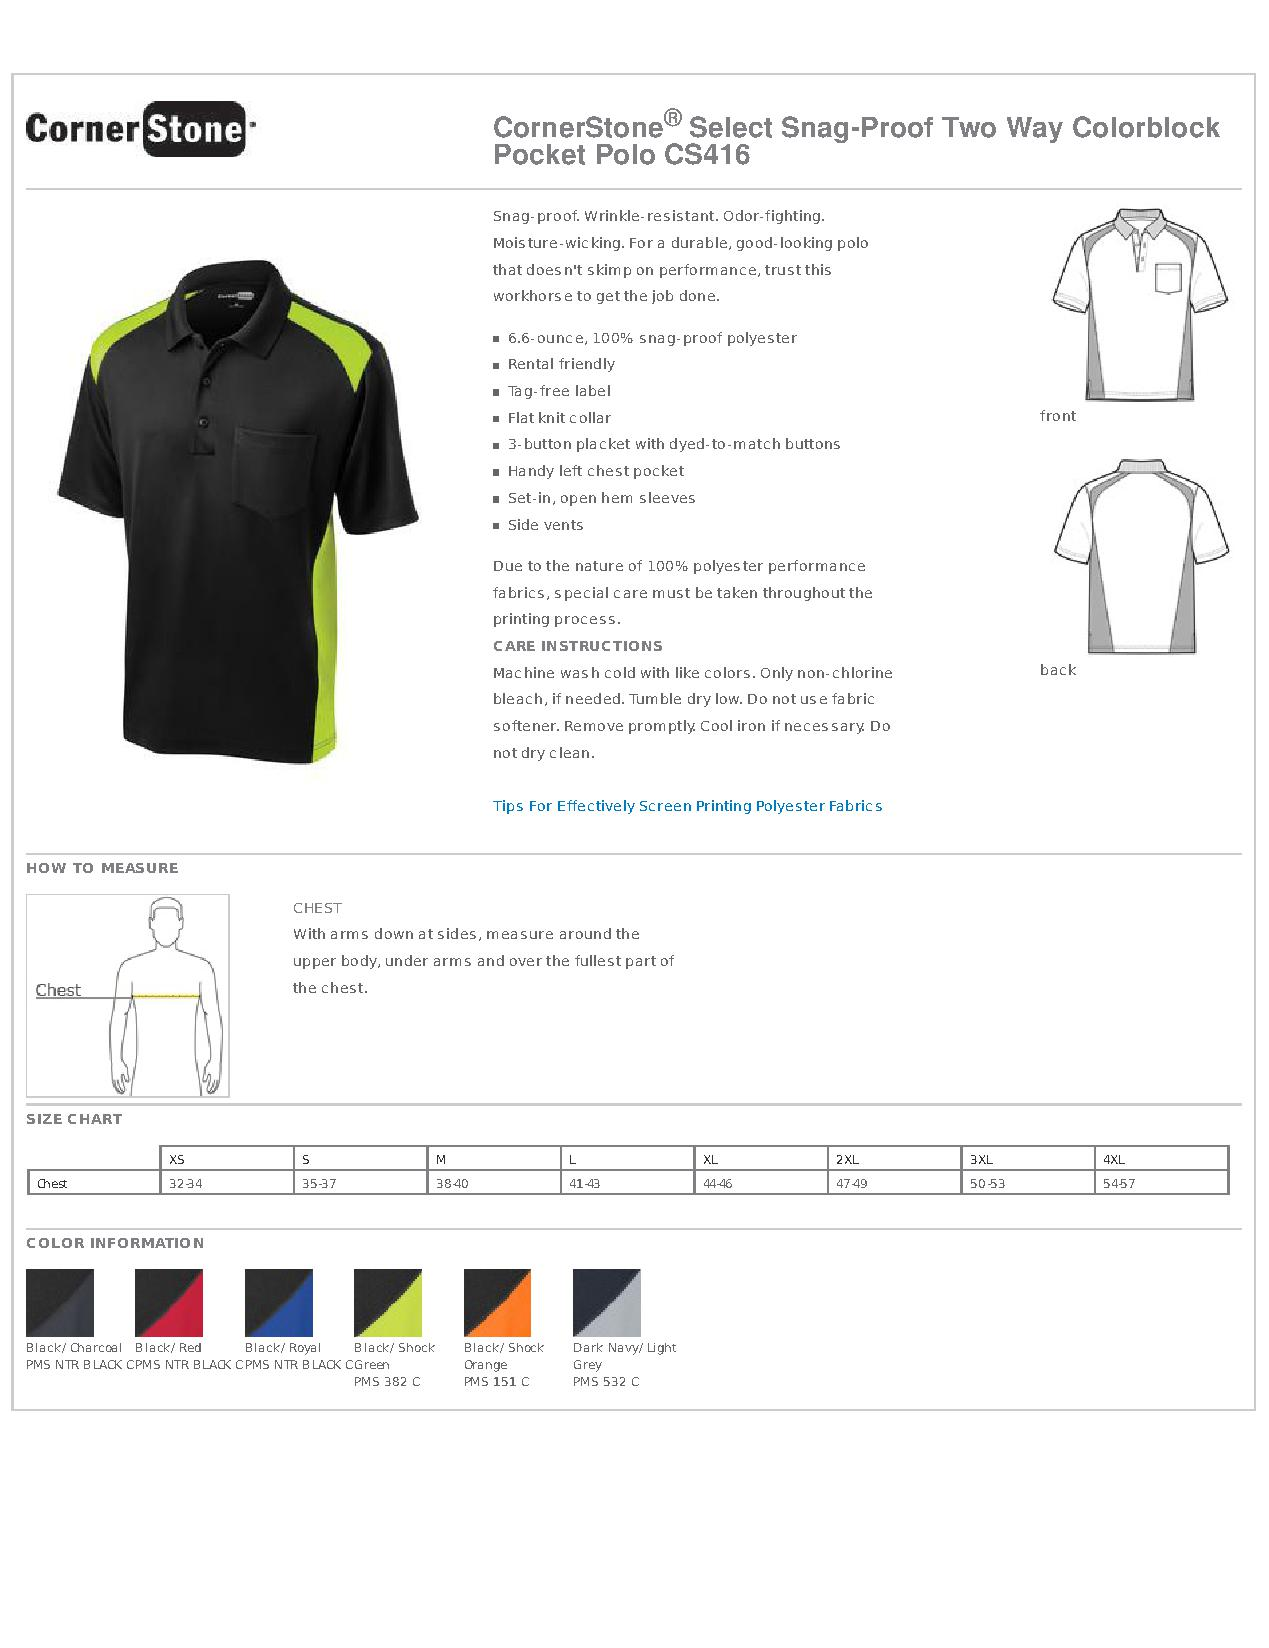 445e04d7 CornerStone Select Snag-Proof Two Way Colorblock Pocket Polo Freizeithemden  & Shirts CS416